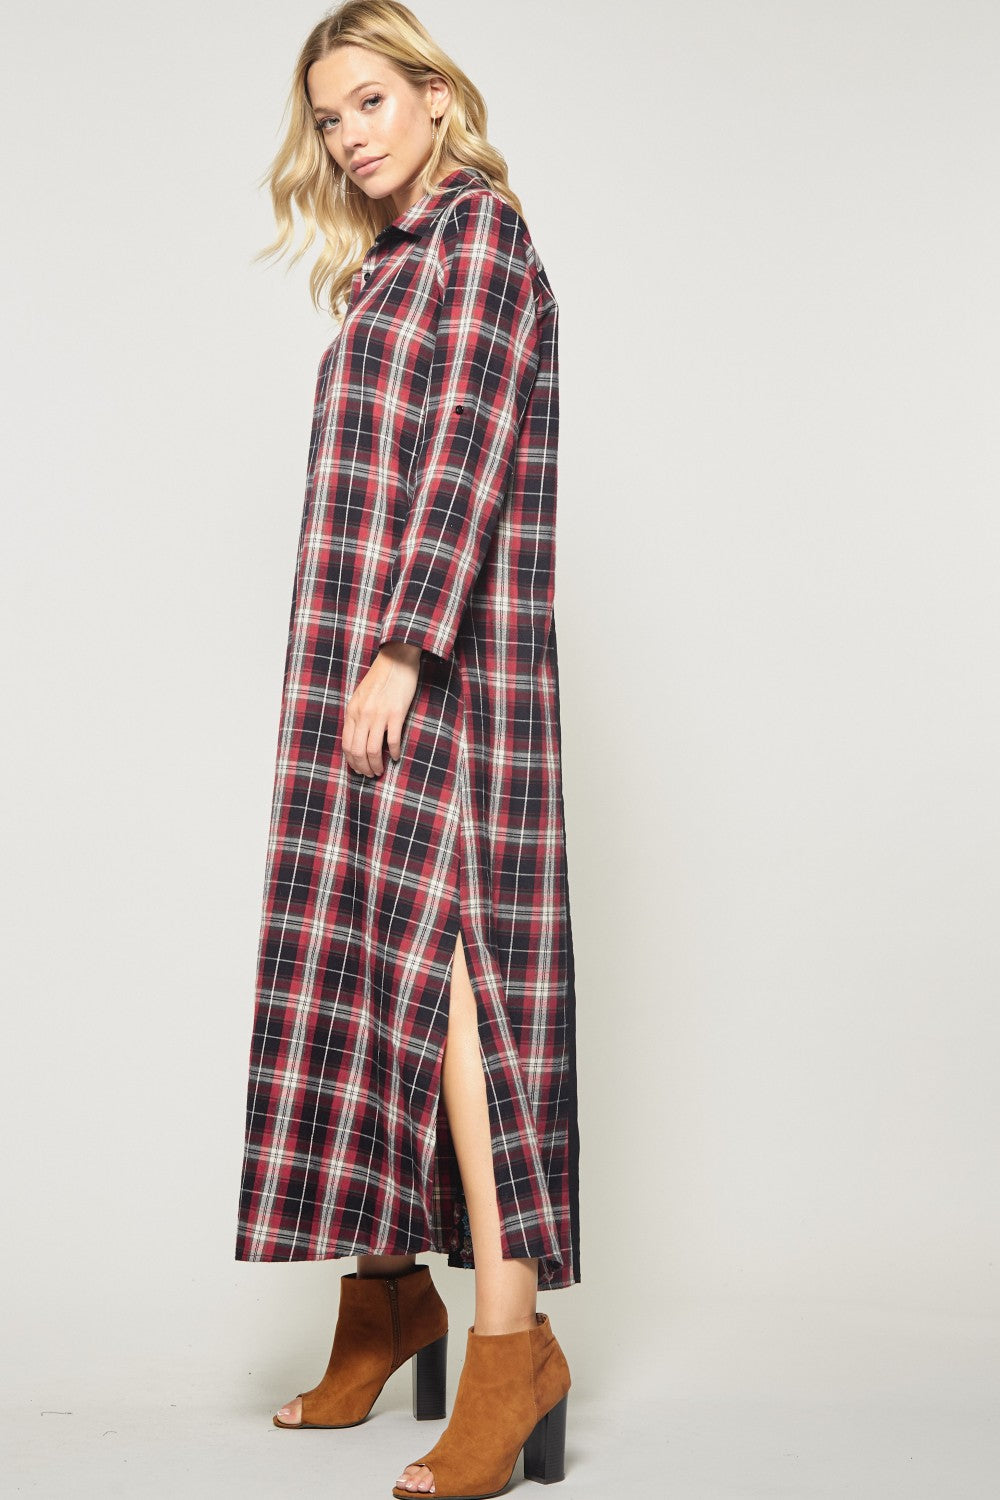 Plaid Button Down Maxi Dress w/ Embroidery Detail on Back